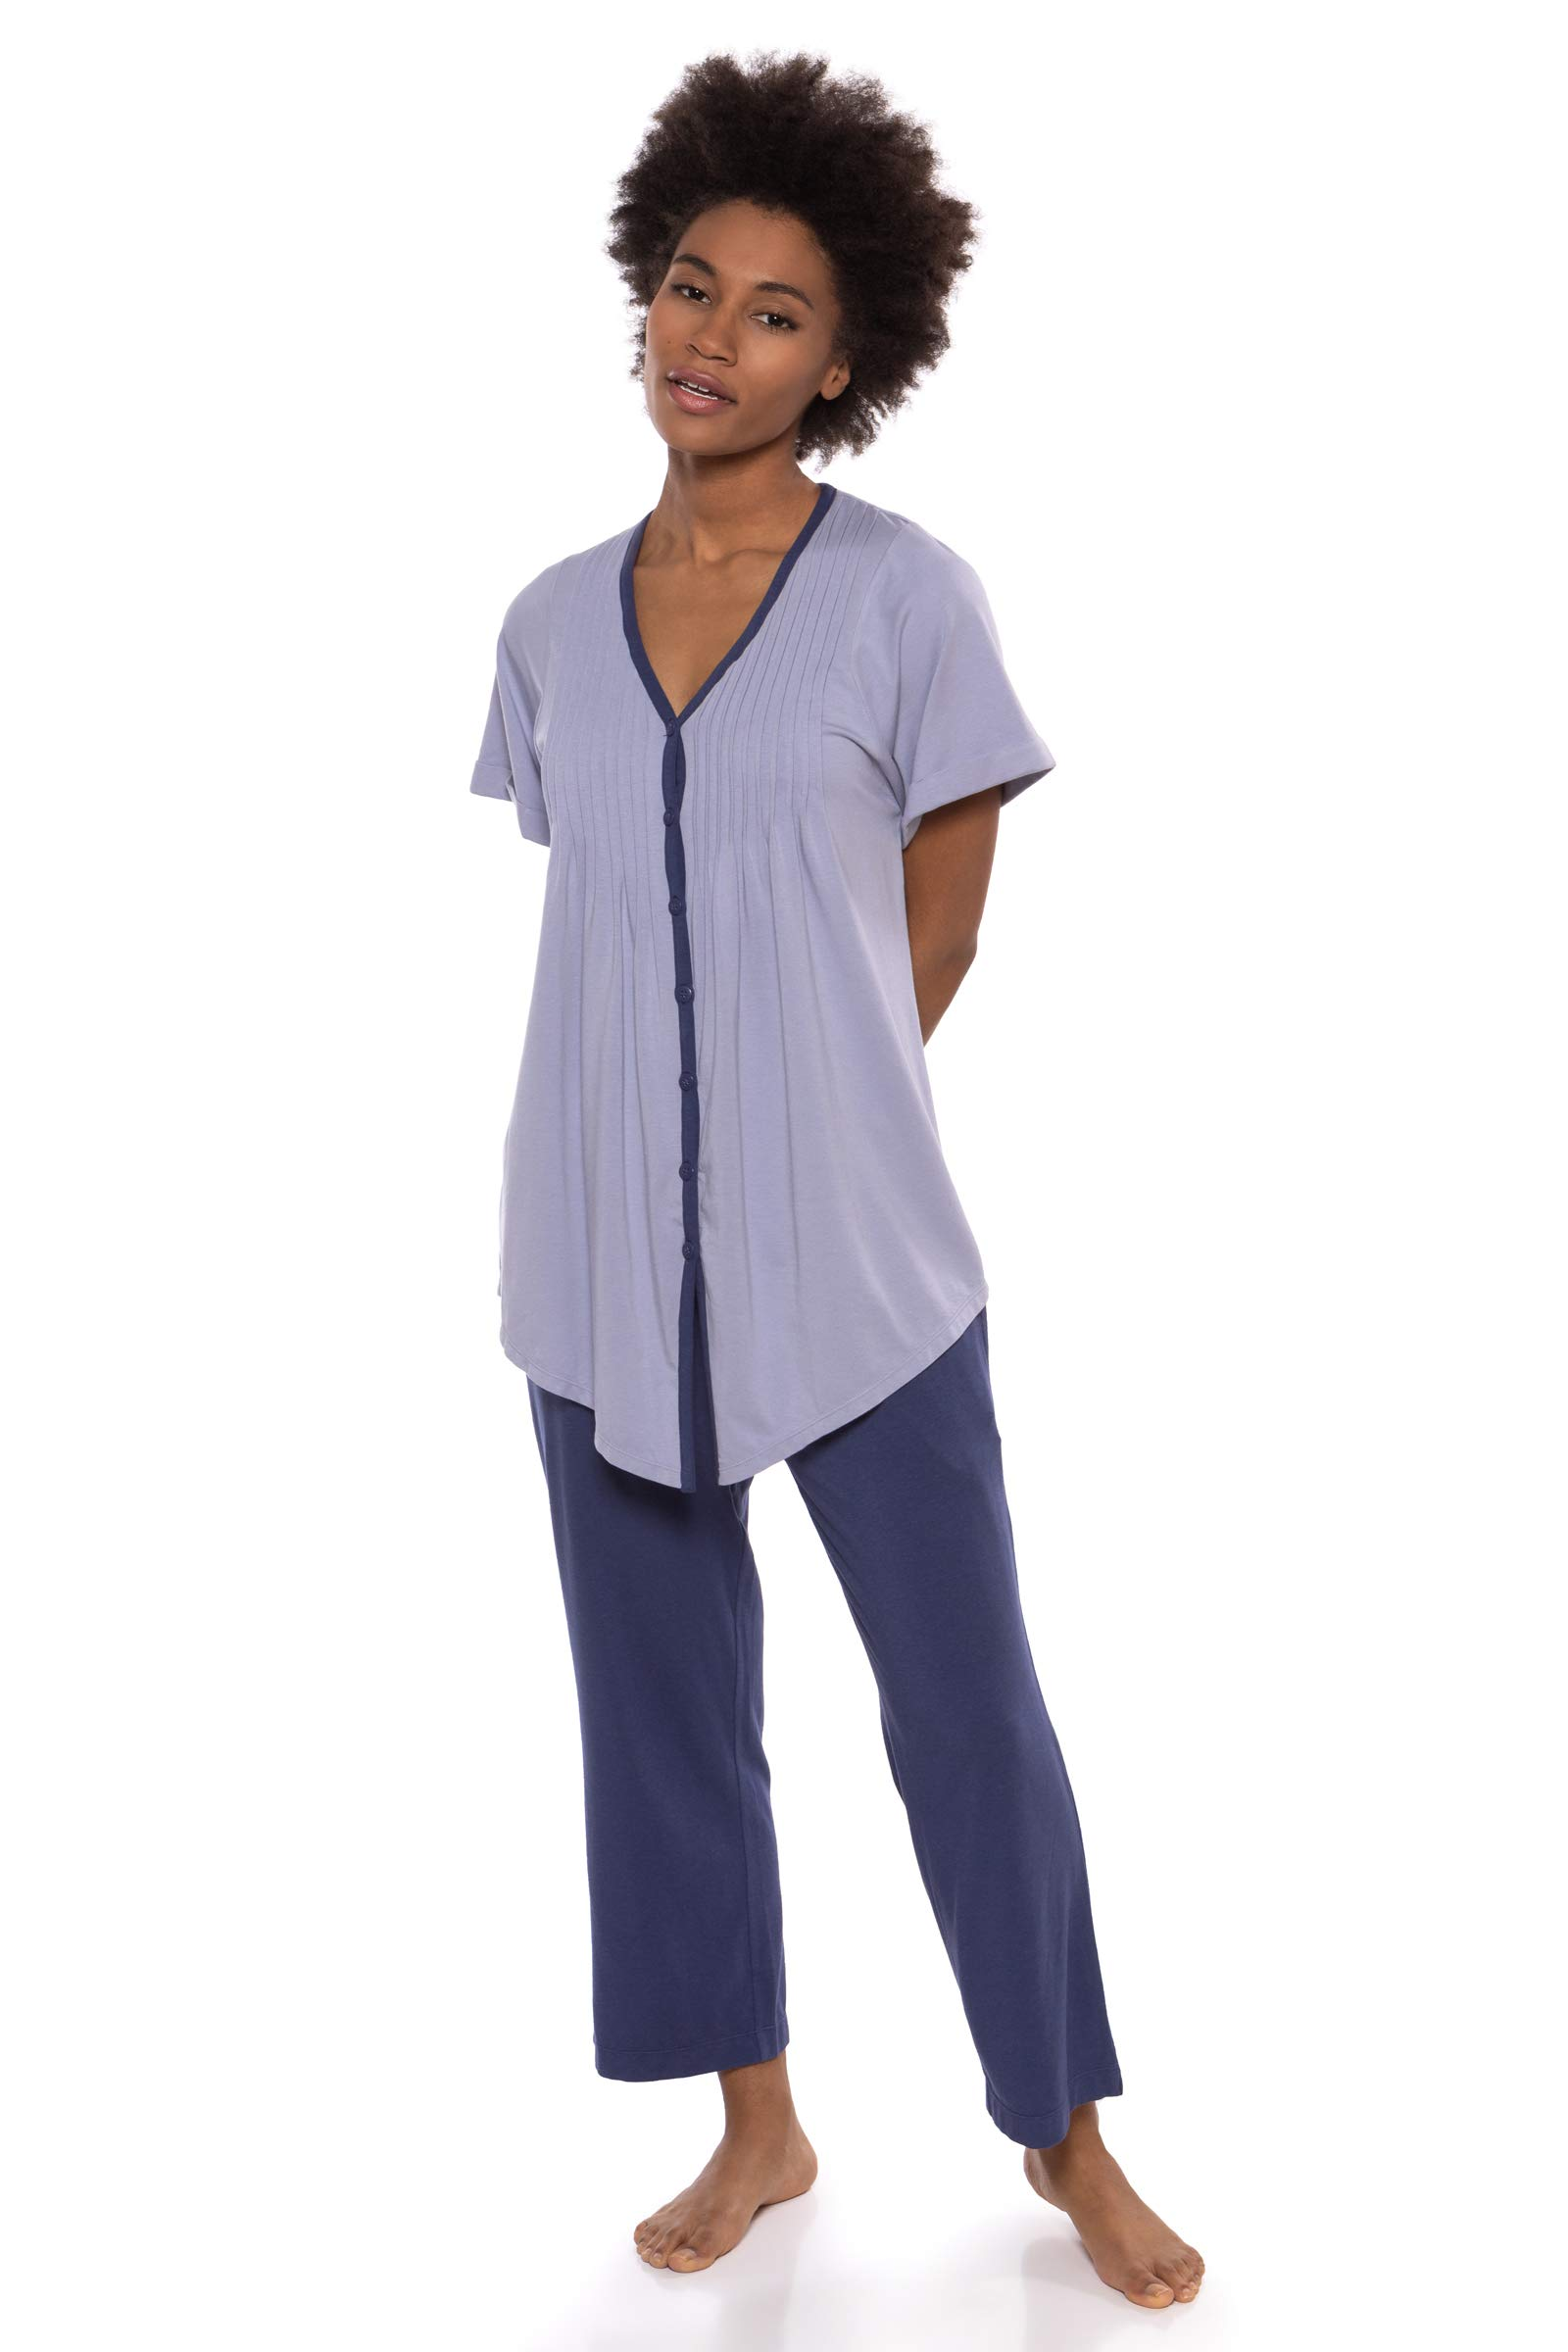 Women s Short Sleeve PJ Set - PJs in Bamboo Viscose by Texere (Sweet  Paradise) 3e1cd7e65